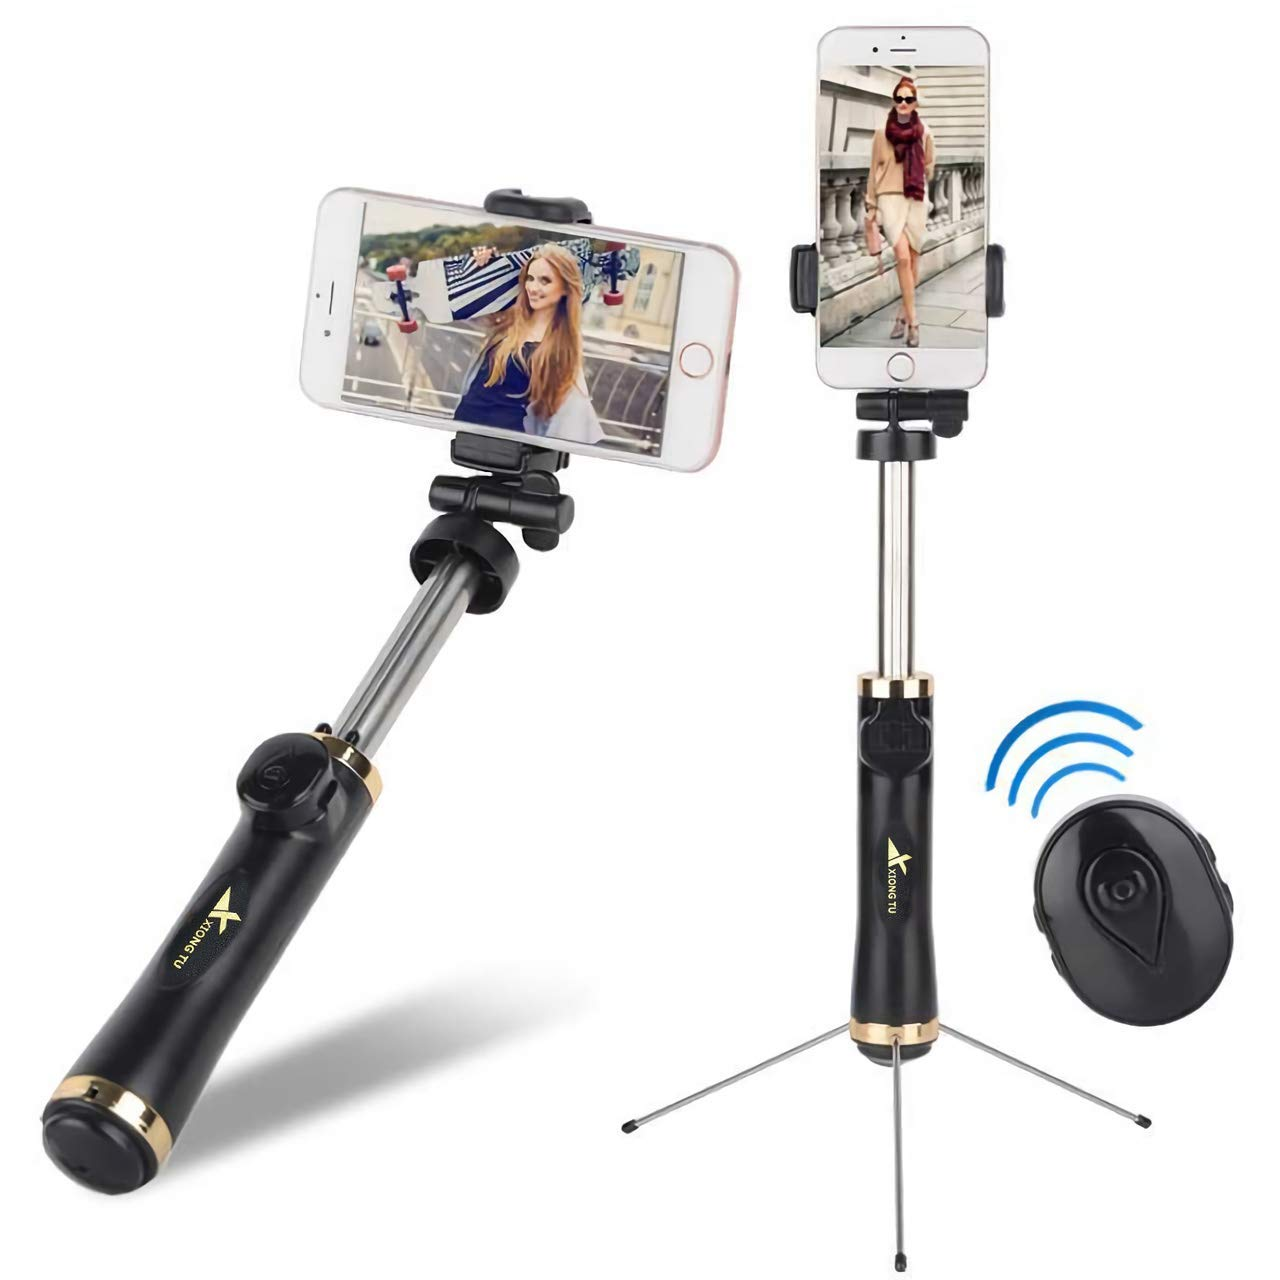 Selfie Stick Compatible with iPhone Xs Max Xr X 8 7 6 6s 5 Plus, Android, Samsung Galaxy and More Portable & Extendable Selfie Stick Tripod by Evanee